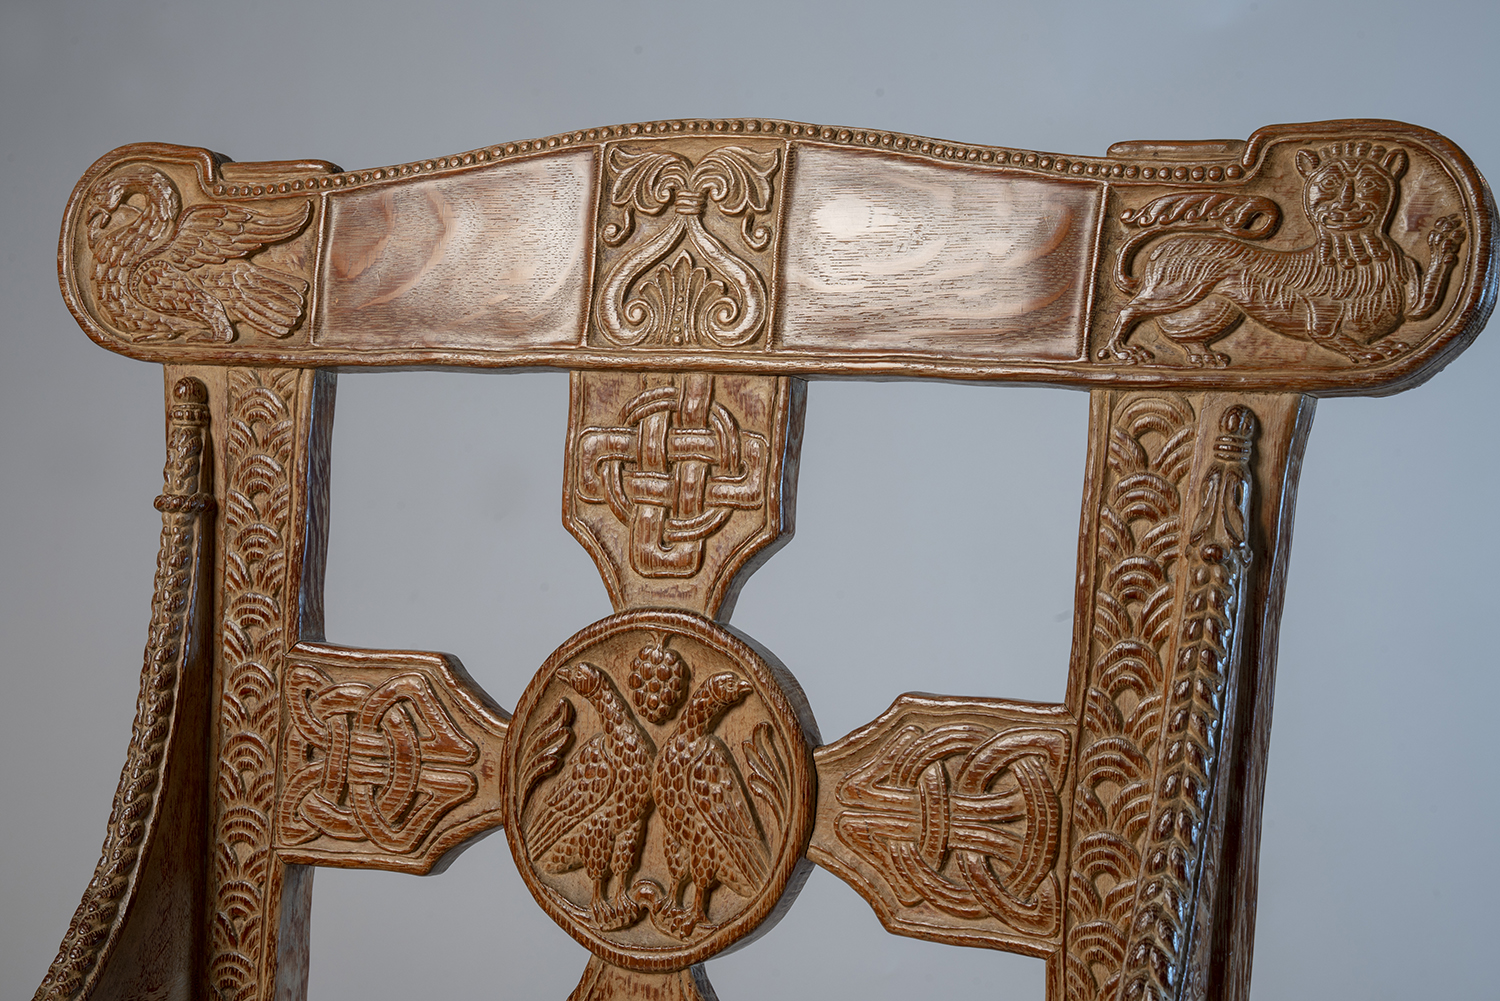 Figure 5: Glencairn's chair back (front side). Like the original Tyldal chair, a square cross is anchored by a central medallion. The upper arm of the cross has a design that was copied directly from the original Norwegian chair.